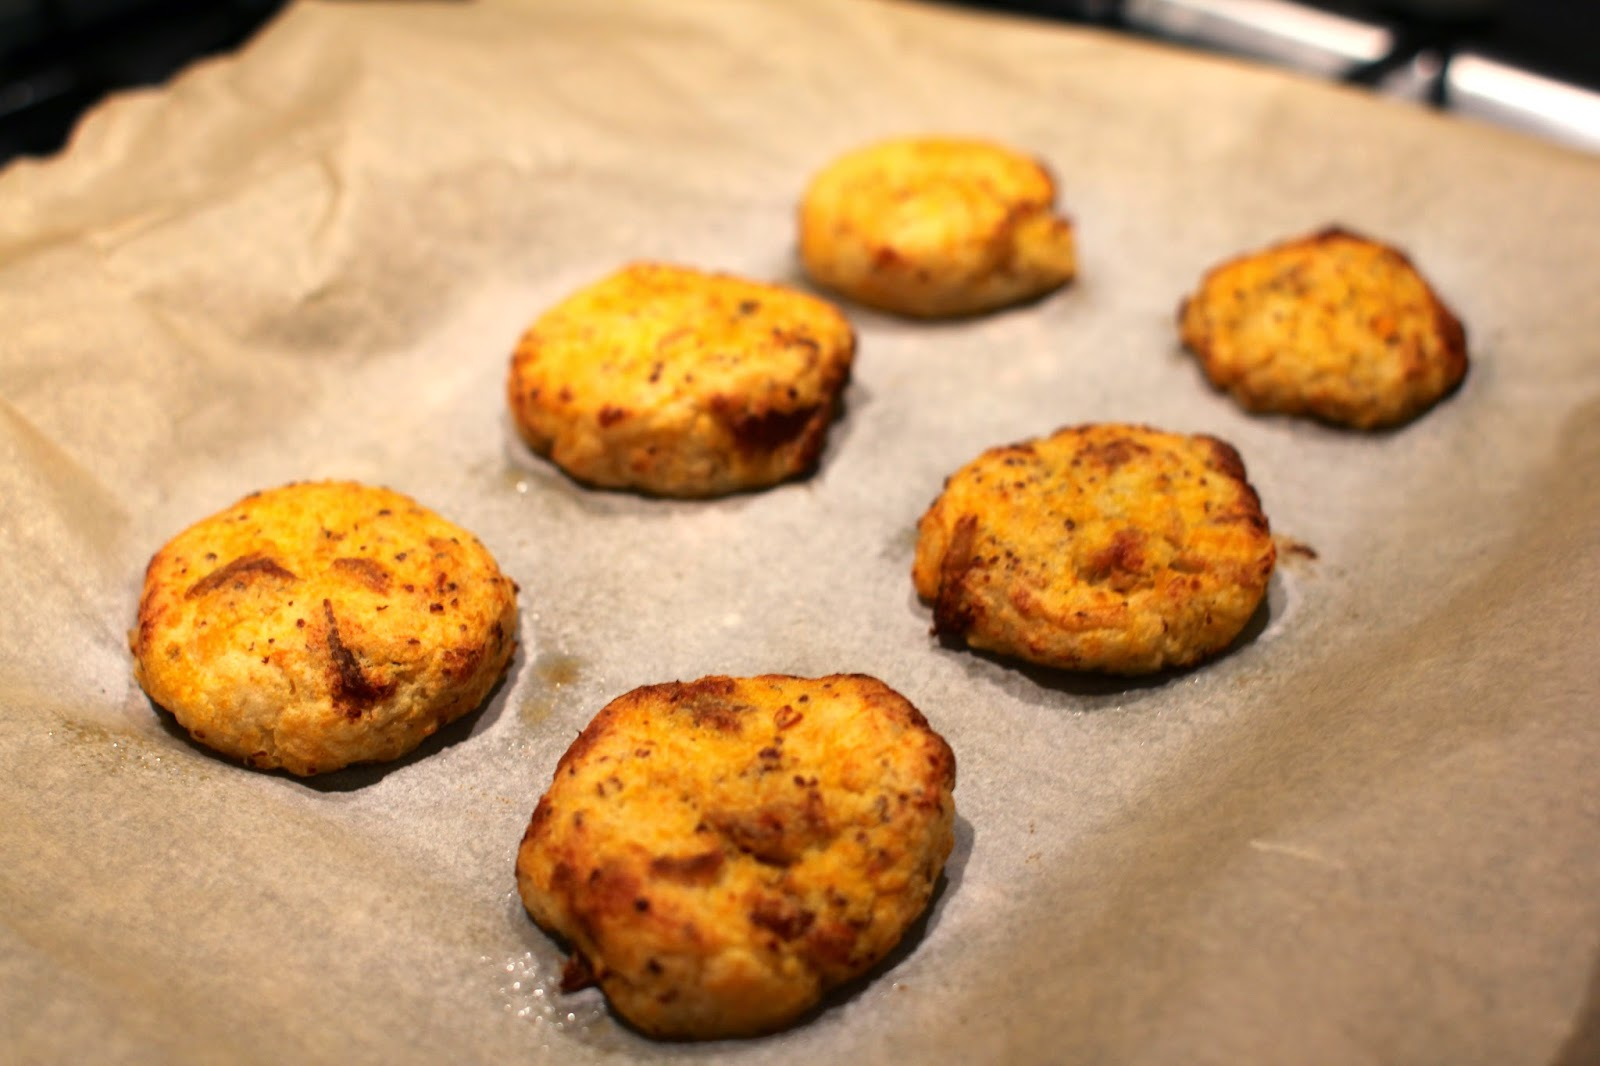 baked fish cakes